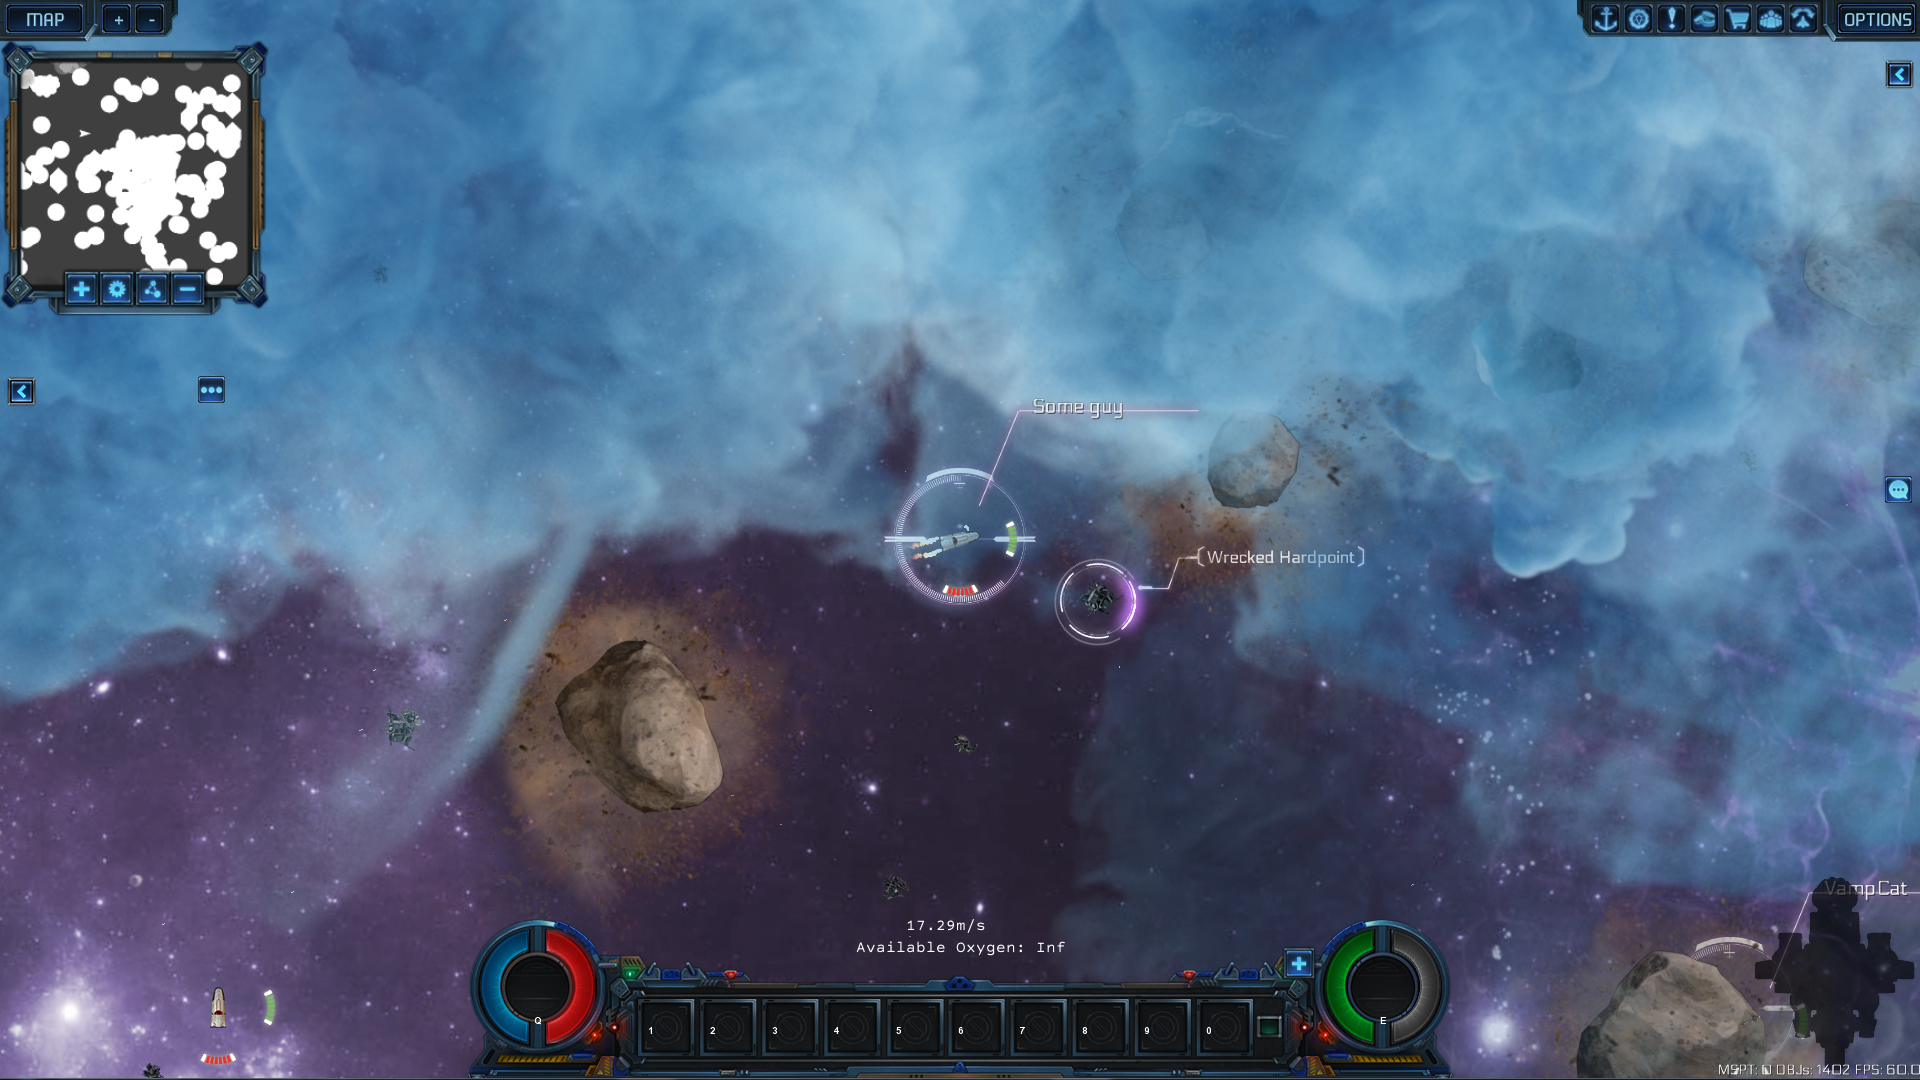 Voidspace at Top Web Games